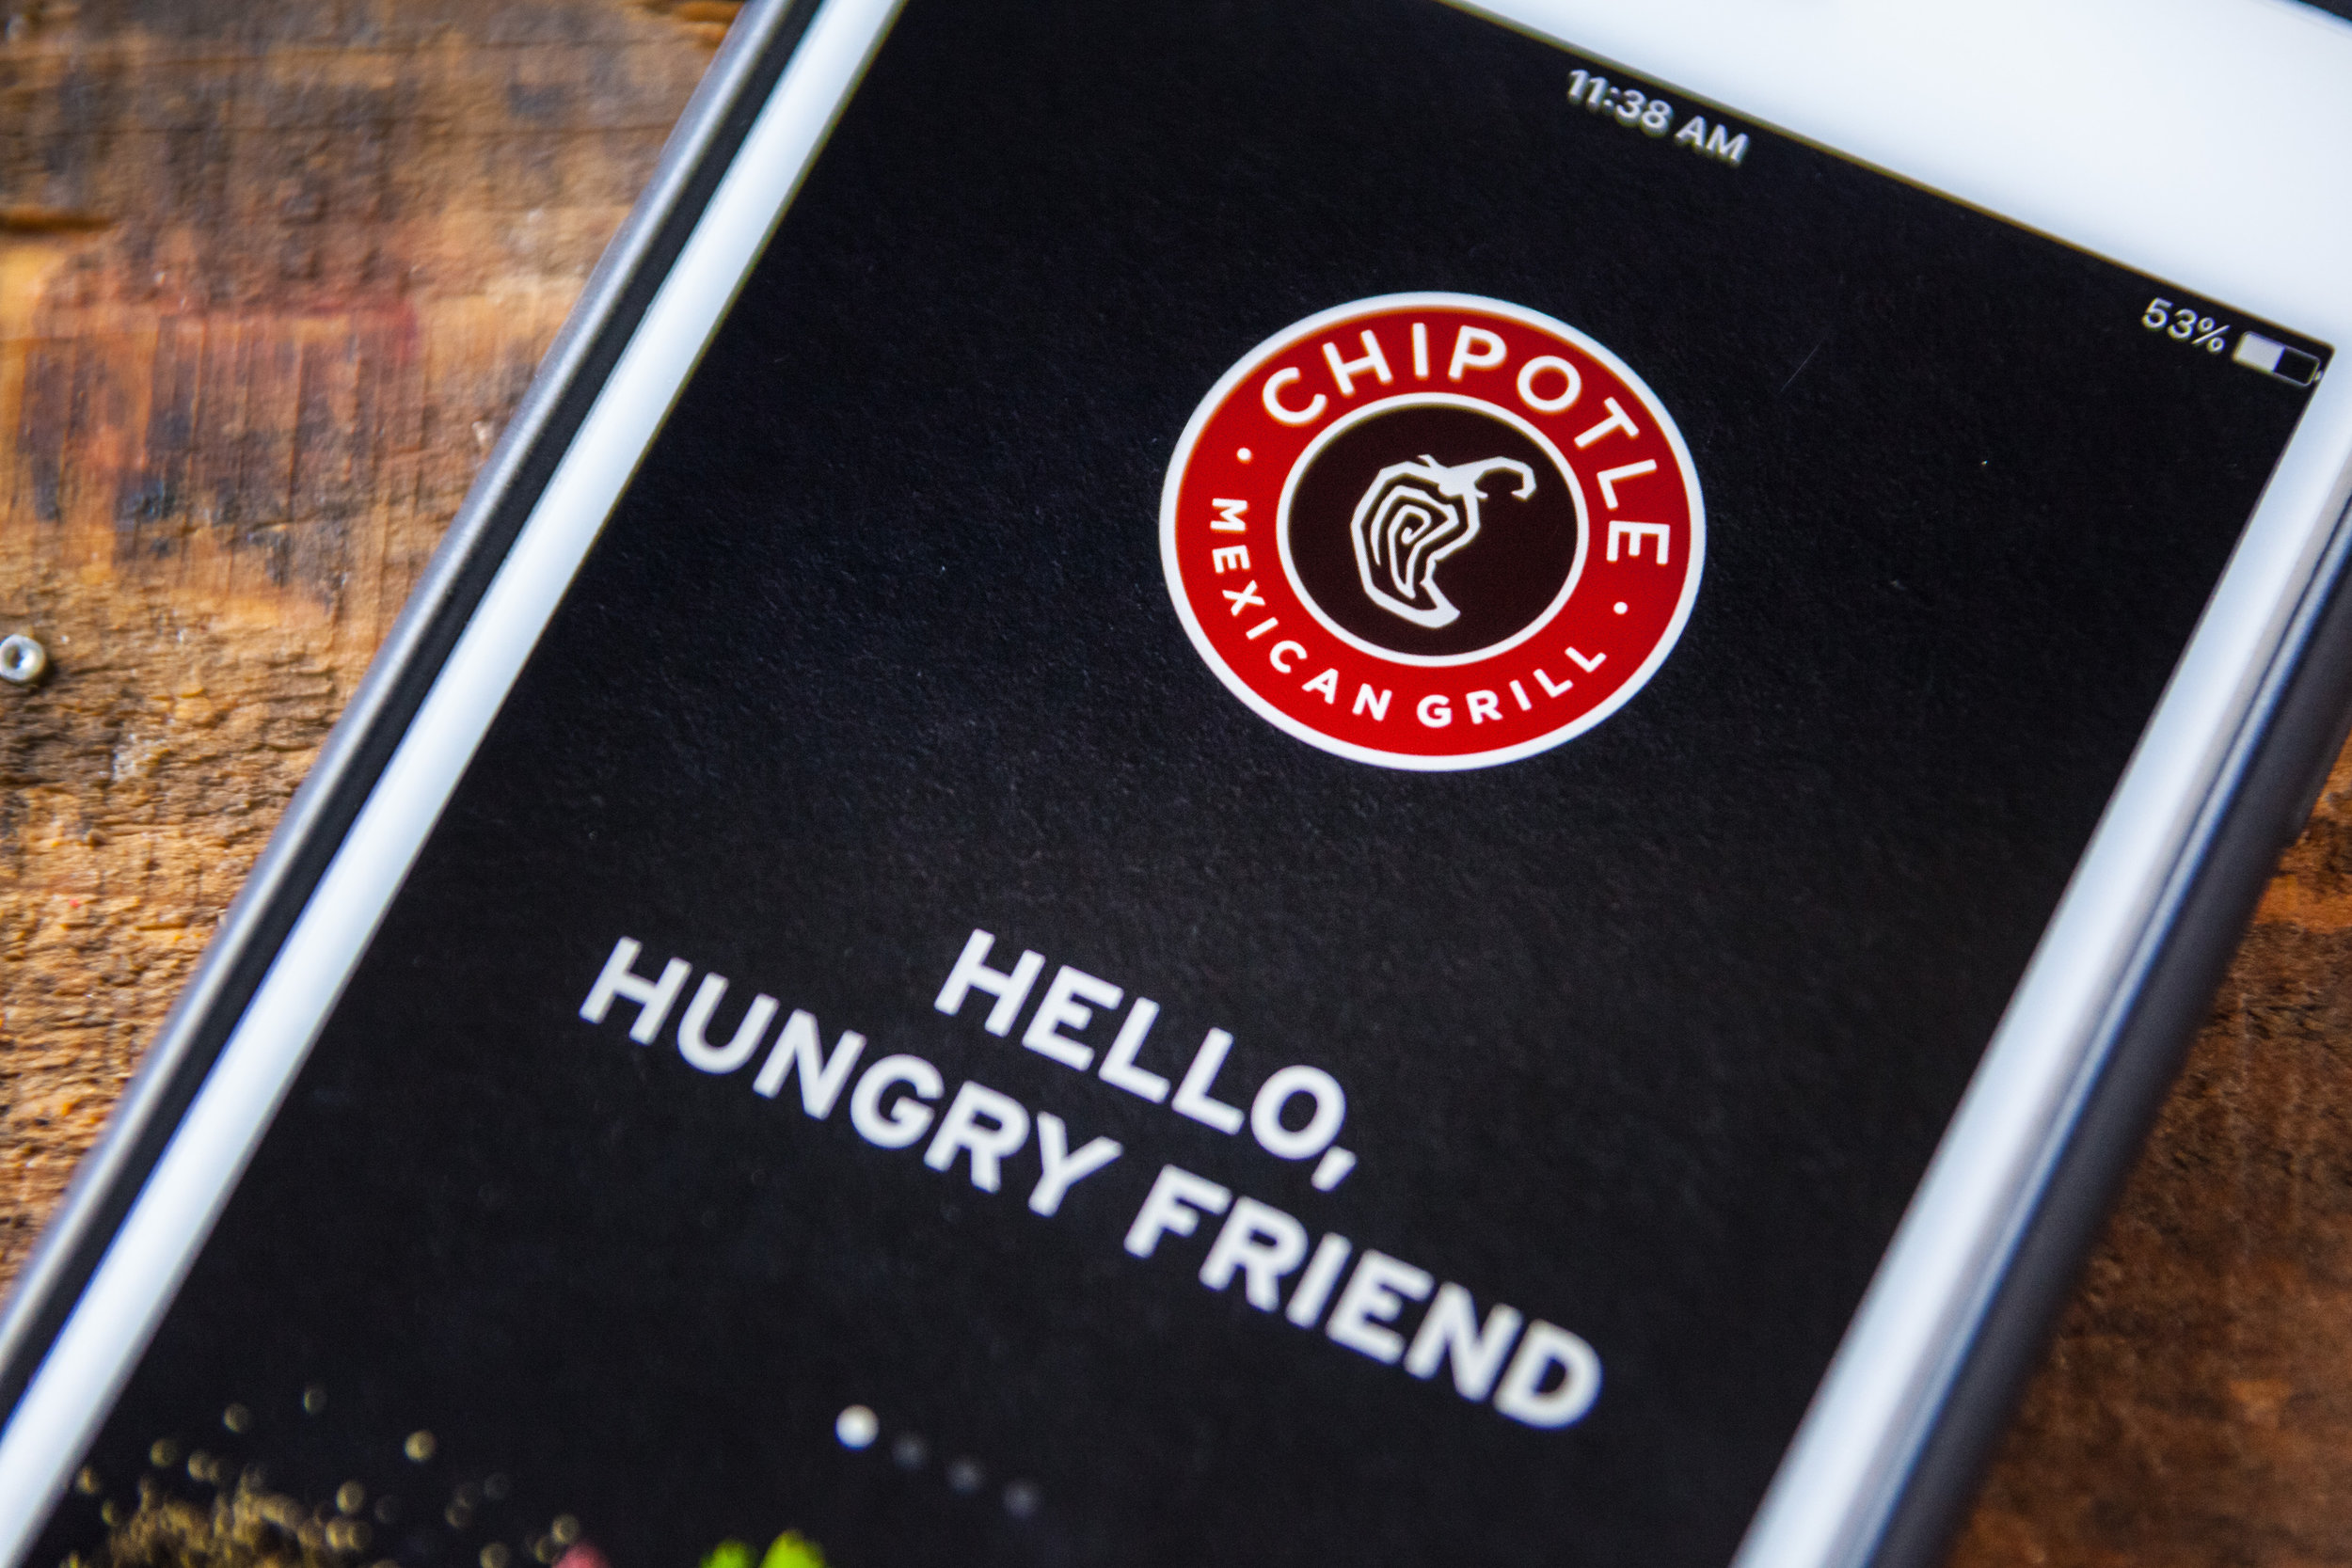 Chipotle App Welcoem Screen | Shutterstock